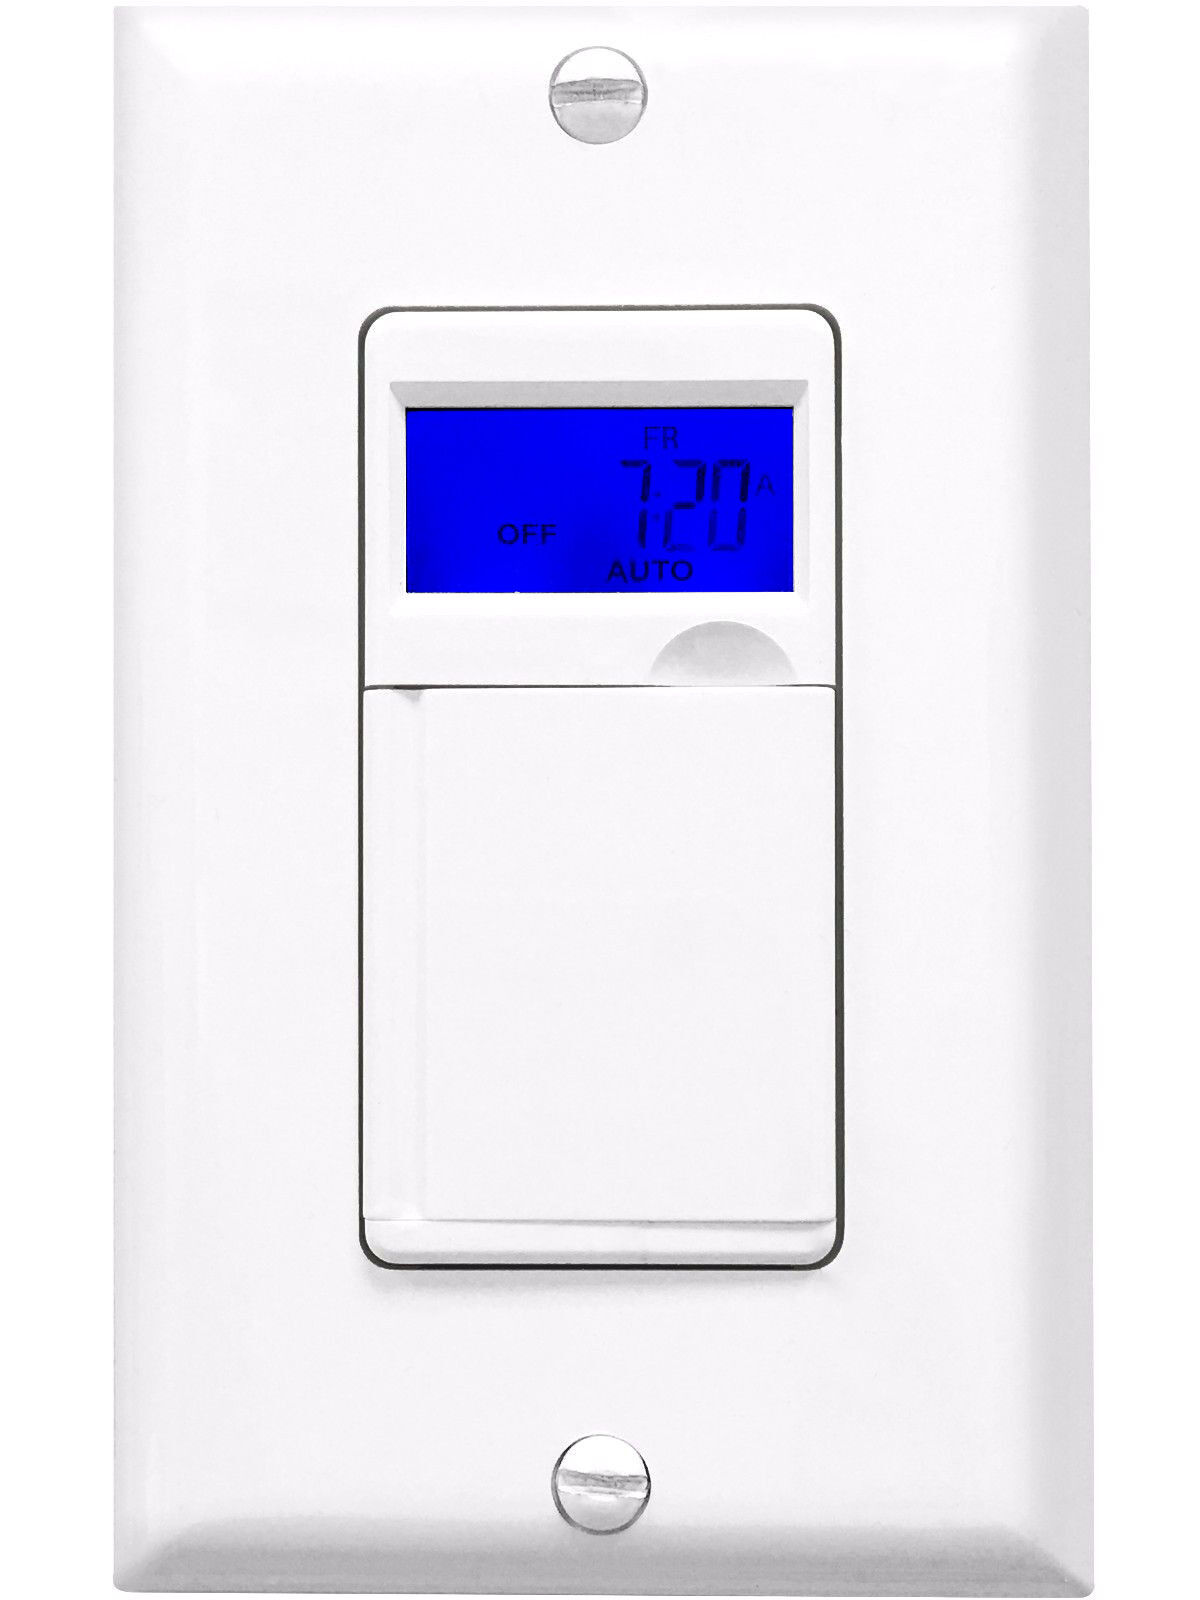 7 day programmable timer switch for outdoor lights white with blue 7 day programmable timer switch for outdoor lights white with blue lcd 1 of 4free shipping see more aloadofball Images